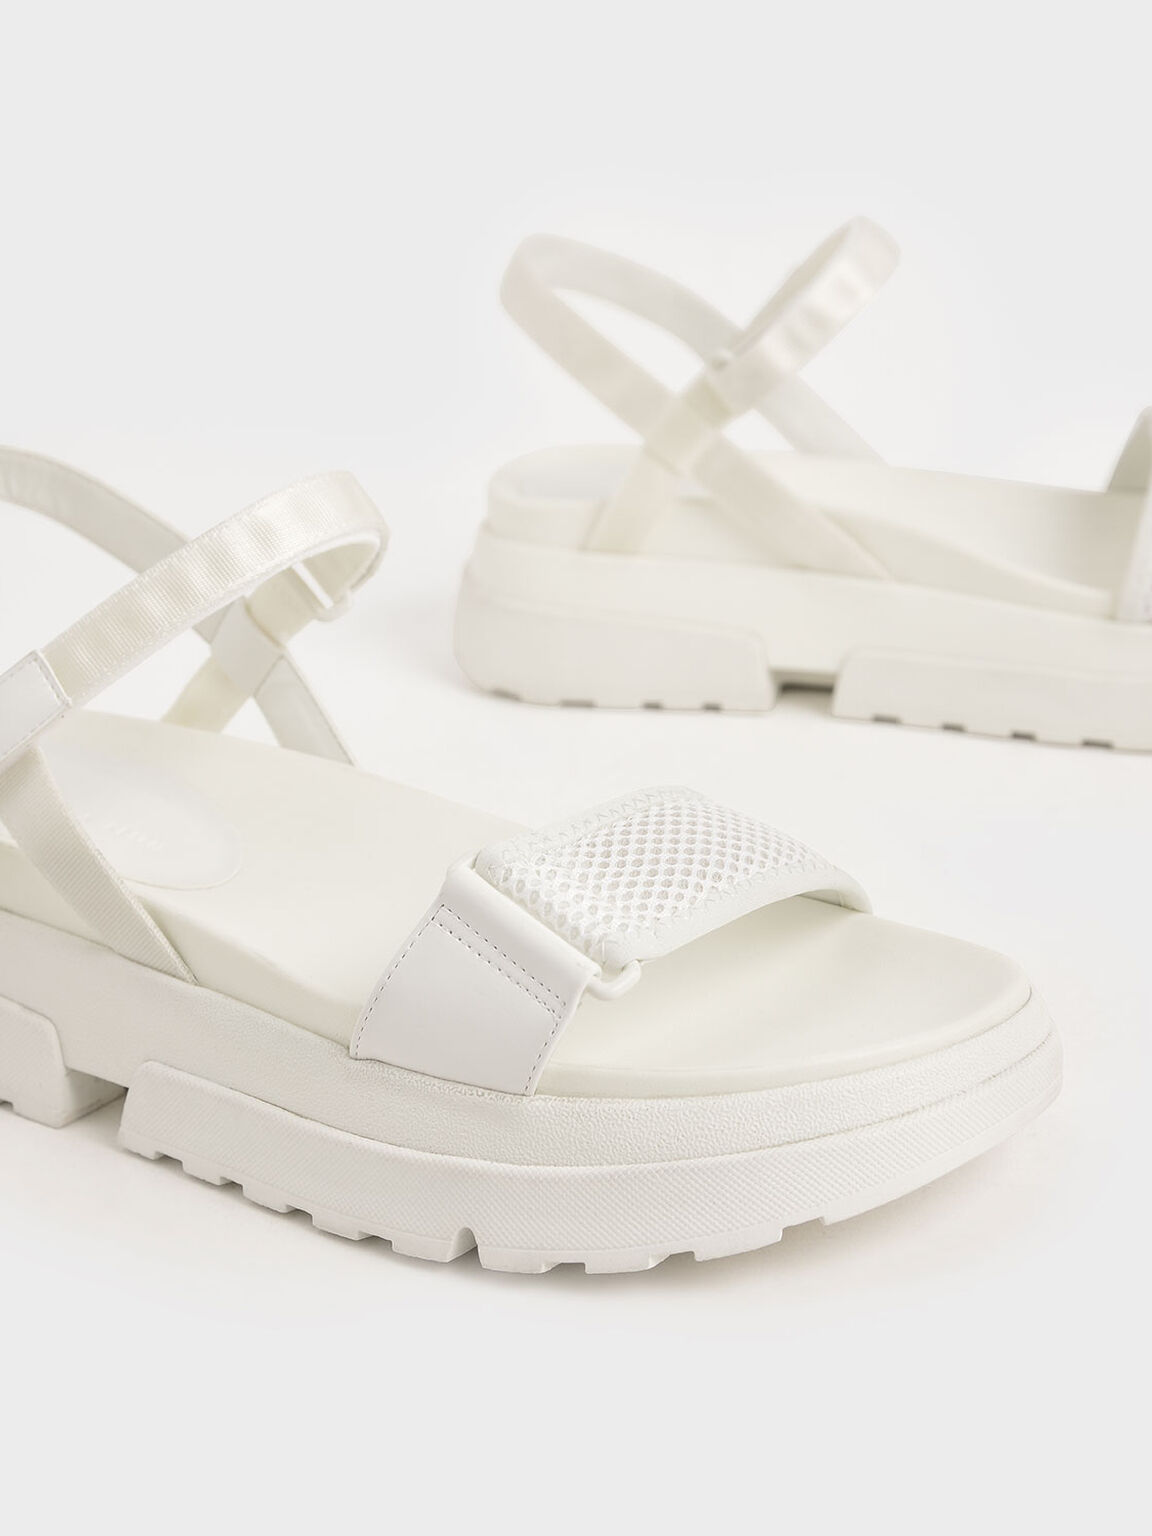 Mesh & Grosgrain Flatform Sandals, White, hi-res